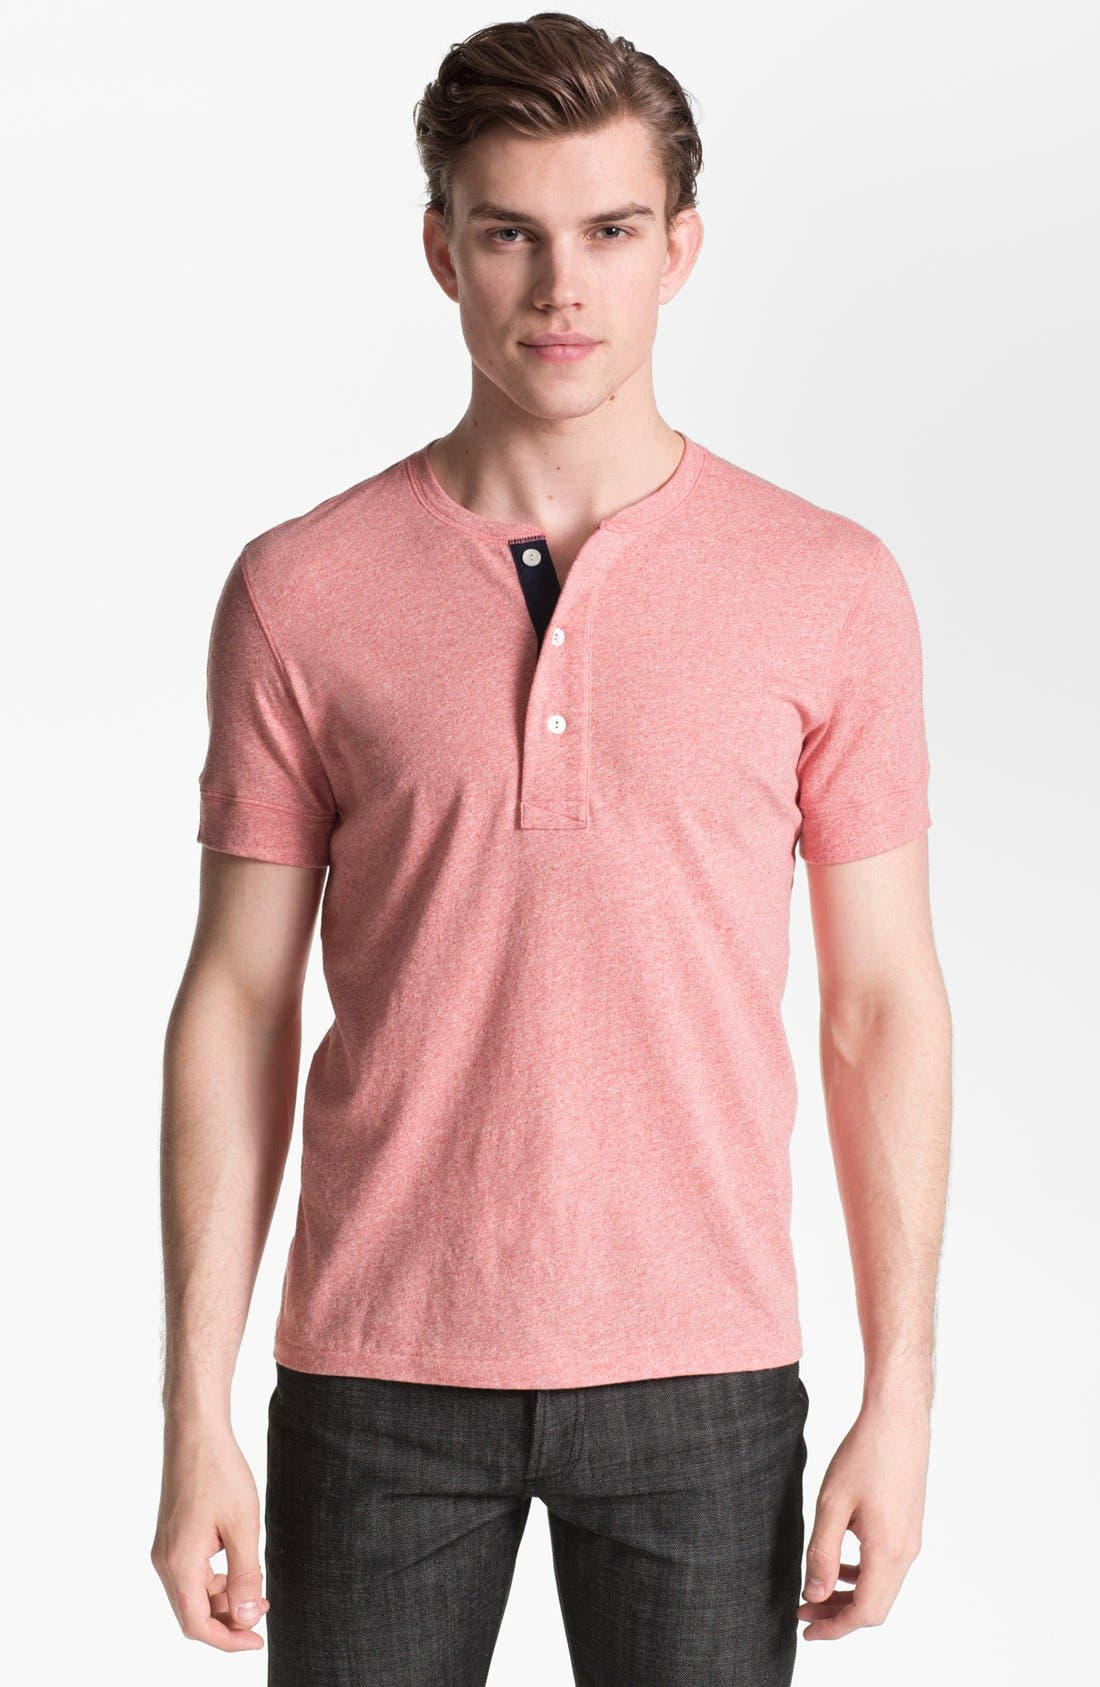 Alternate Image 1 Selected - Jack Spade 'Nolan' Henley T-Shirt